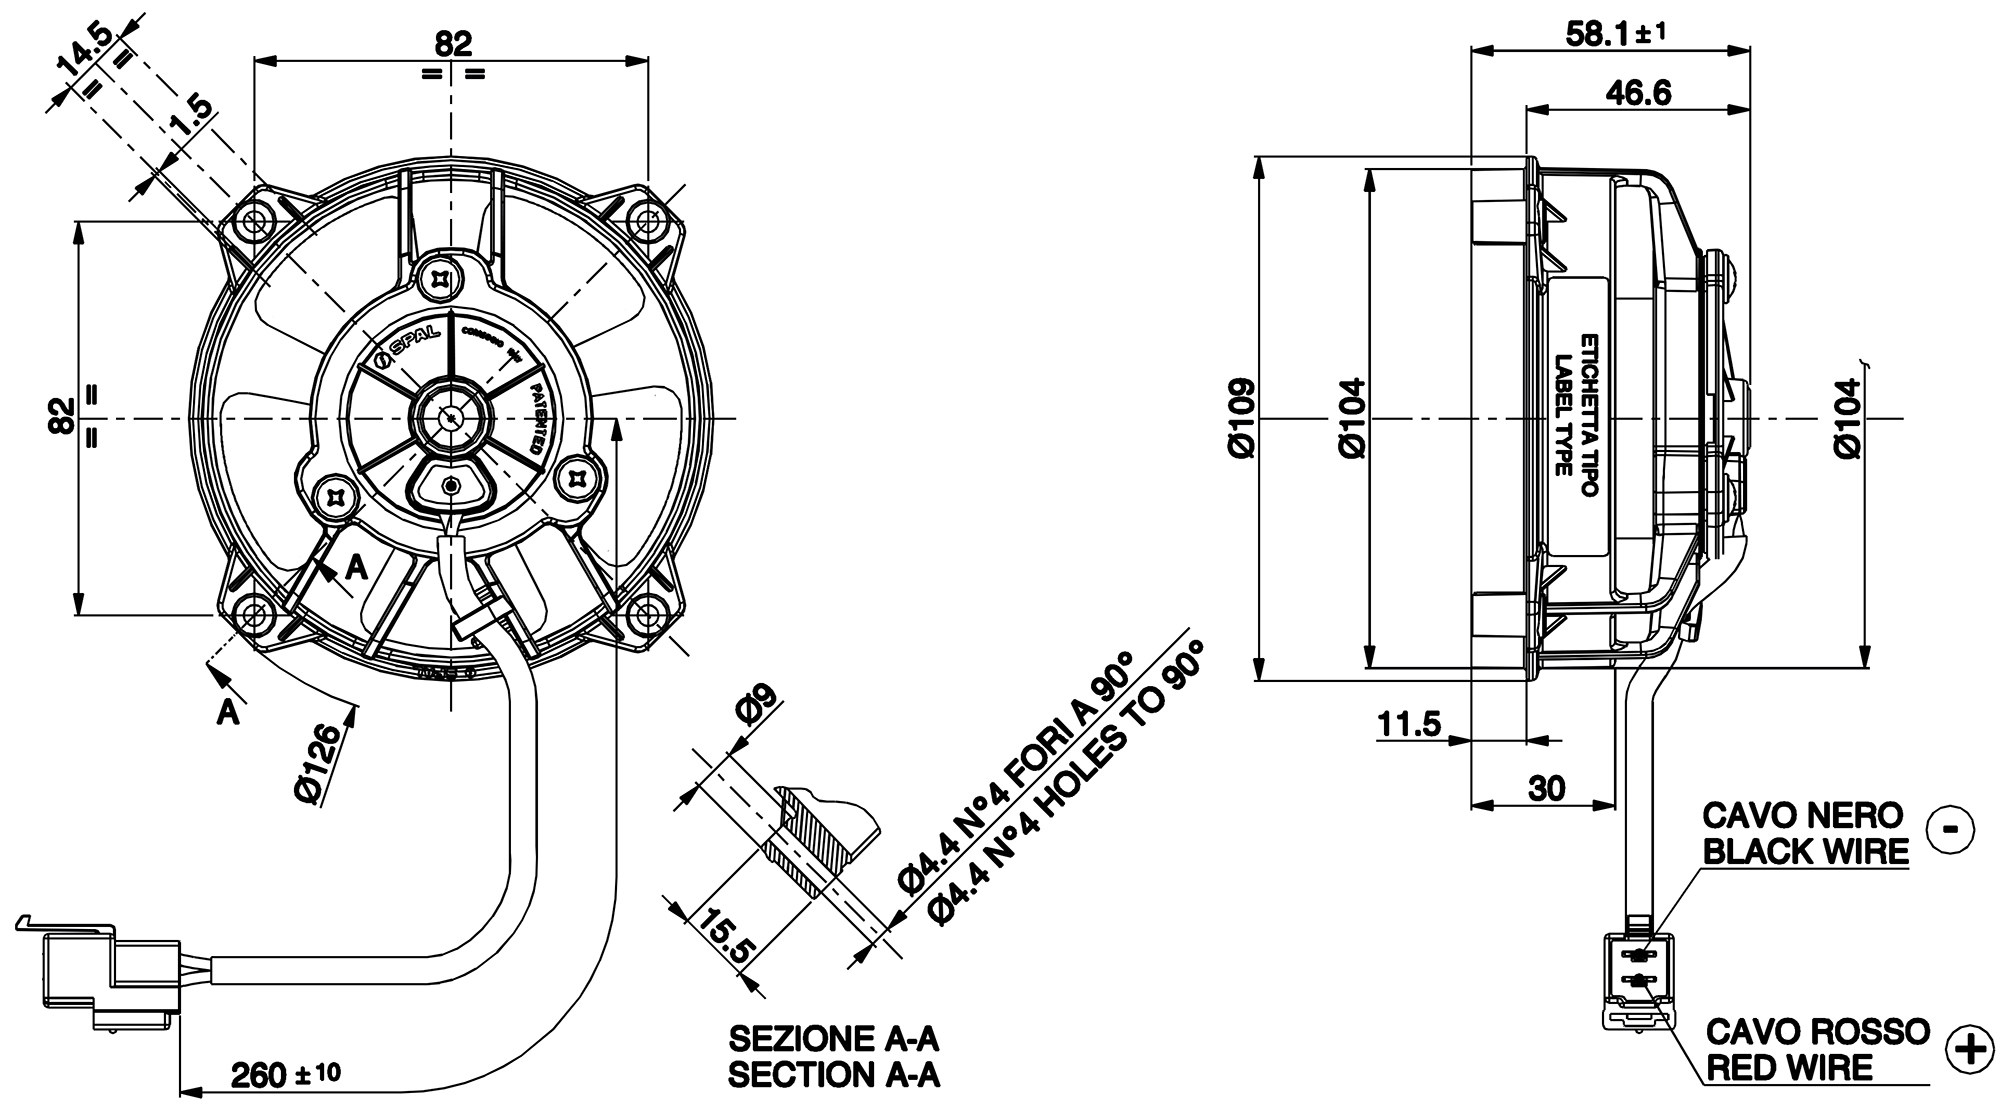 VA32-A101-62 Dimensioned Drawing